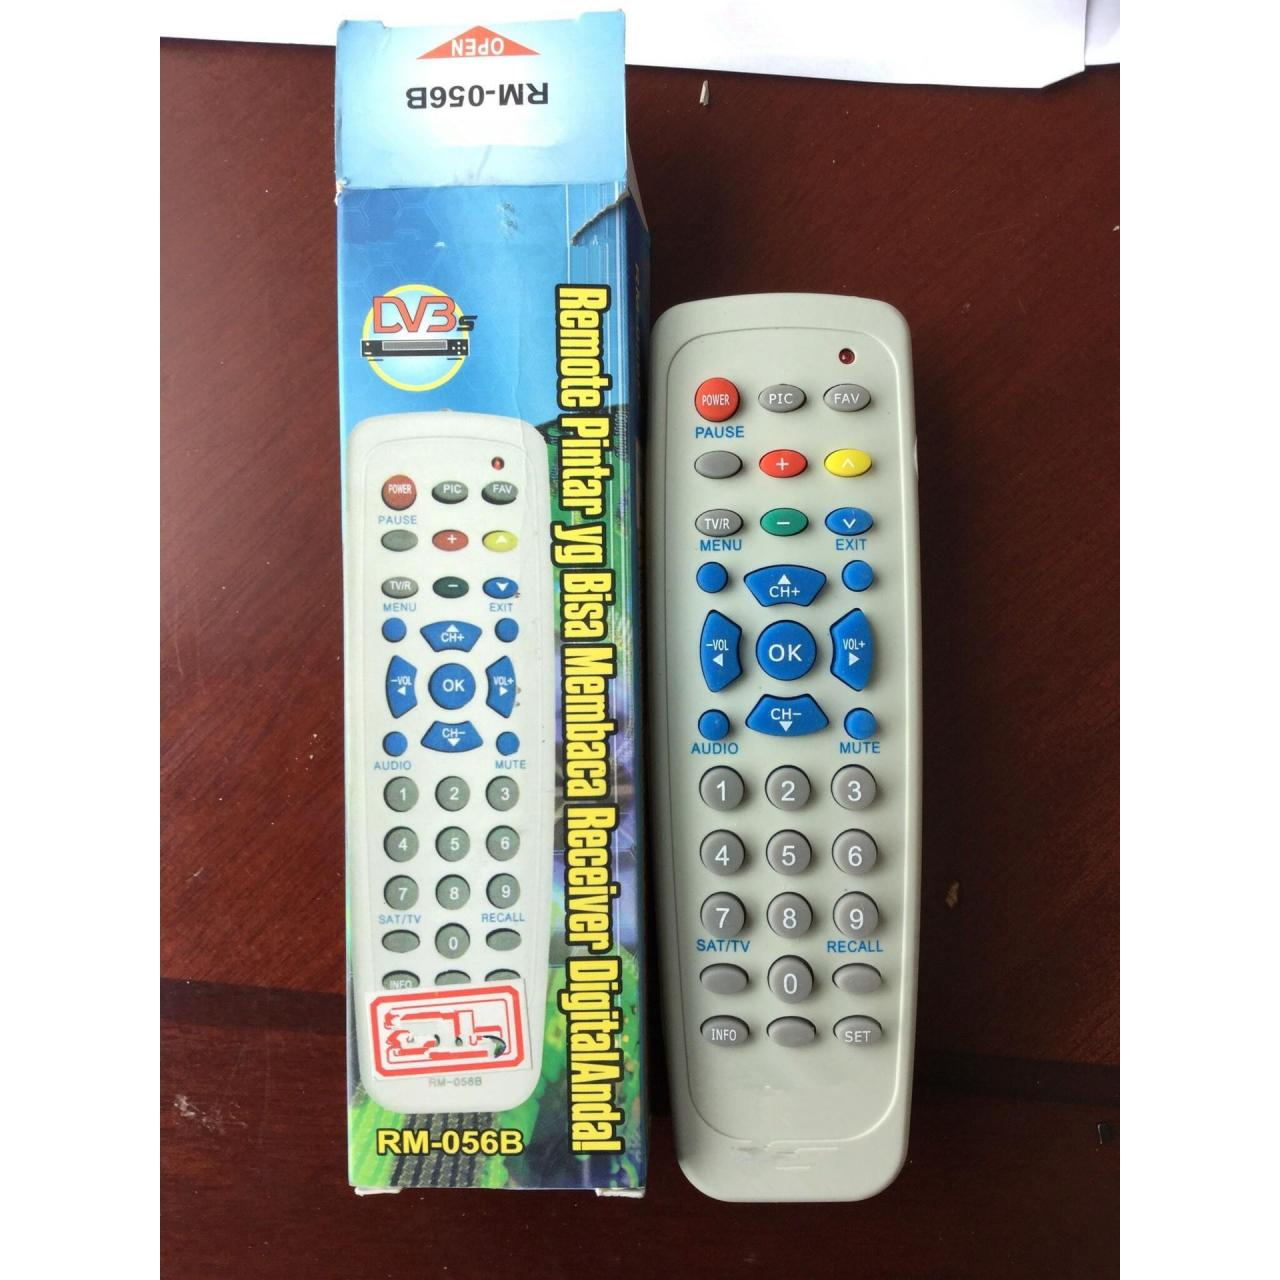 Buy cheap DVB-S remote control RM-056B product